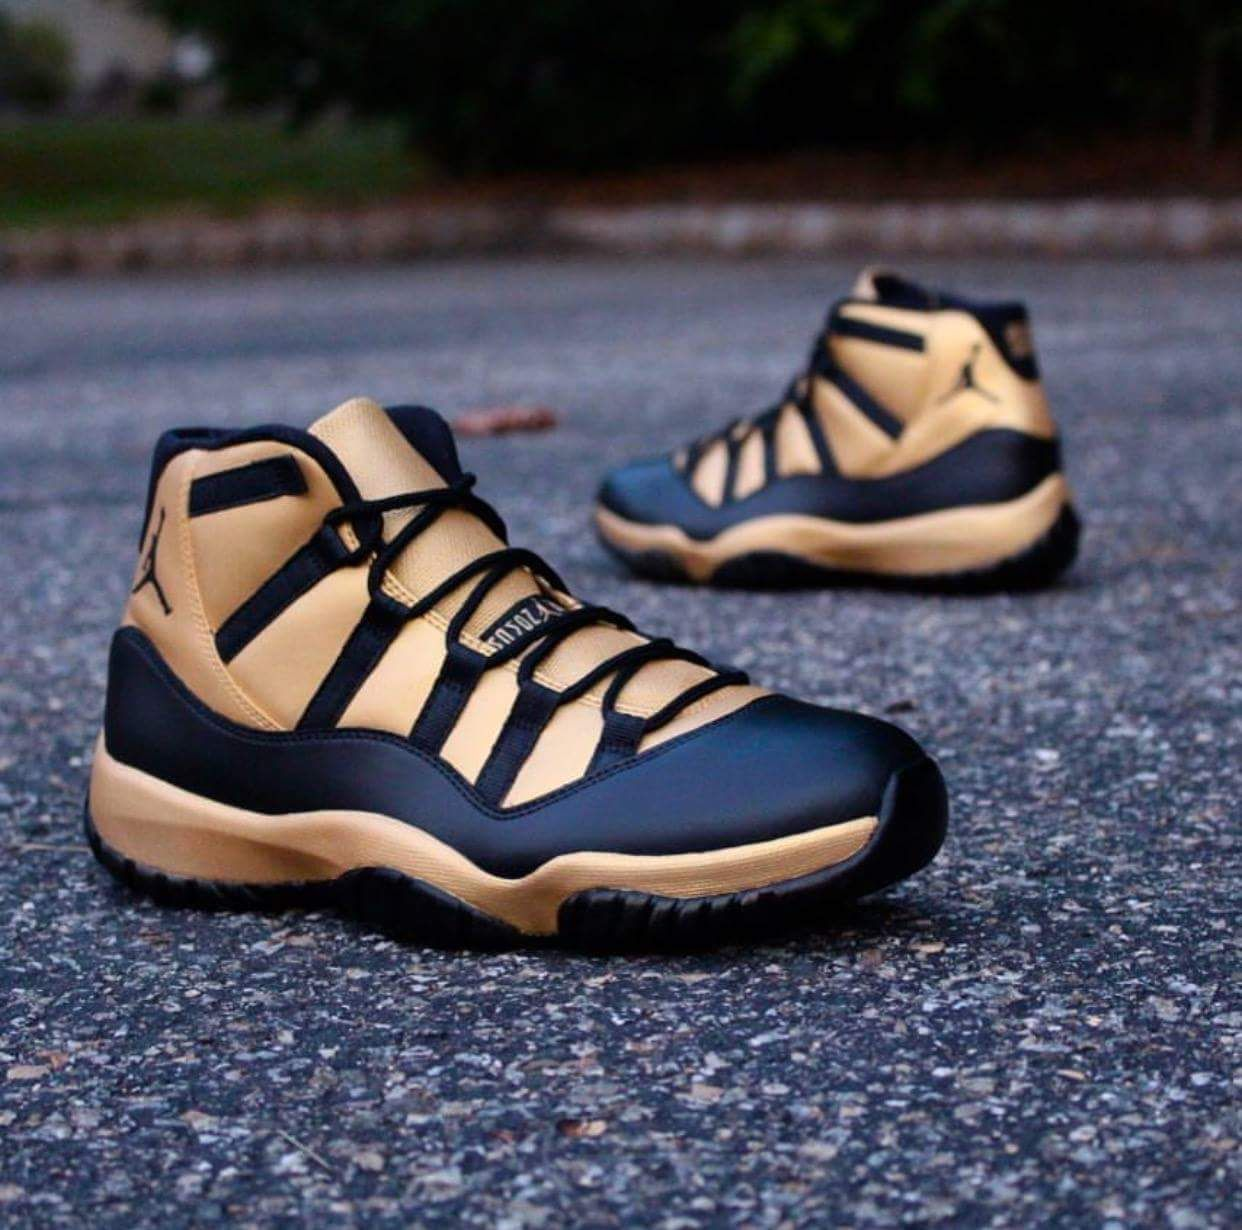 Air jordan 11 custom black   gold  2e99da246